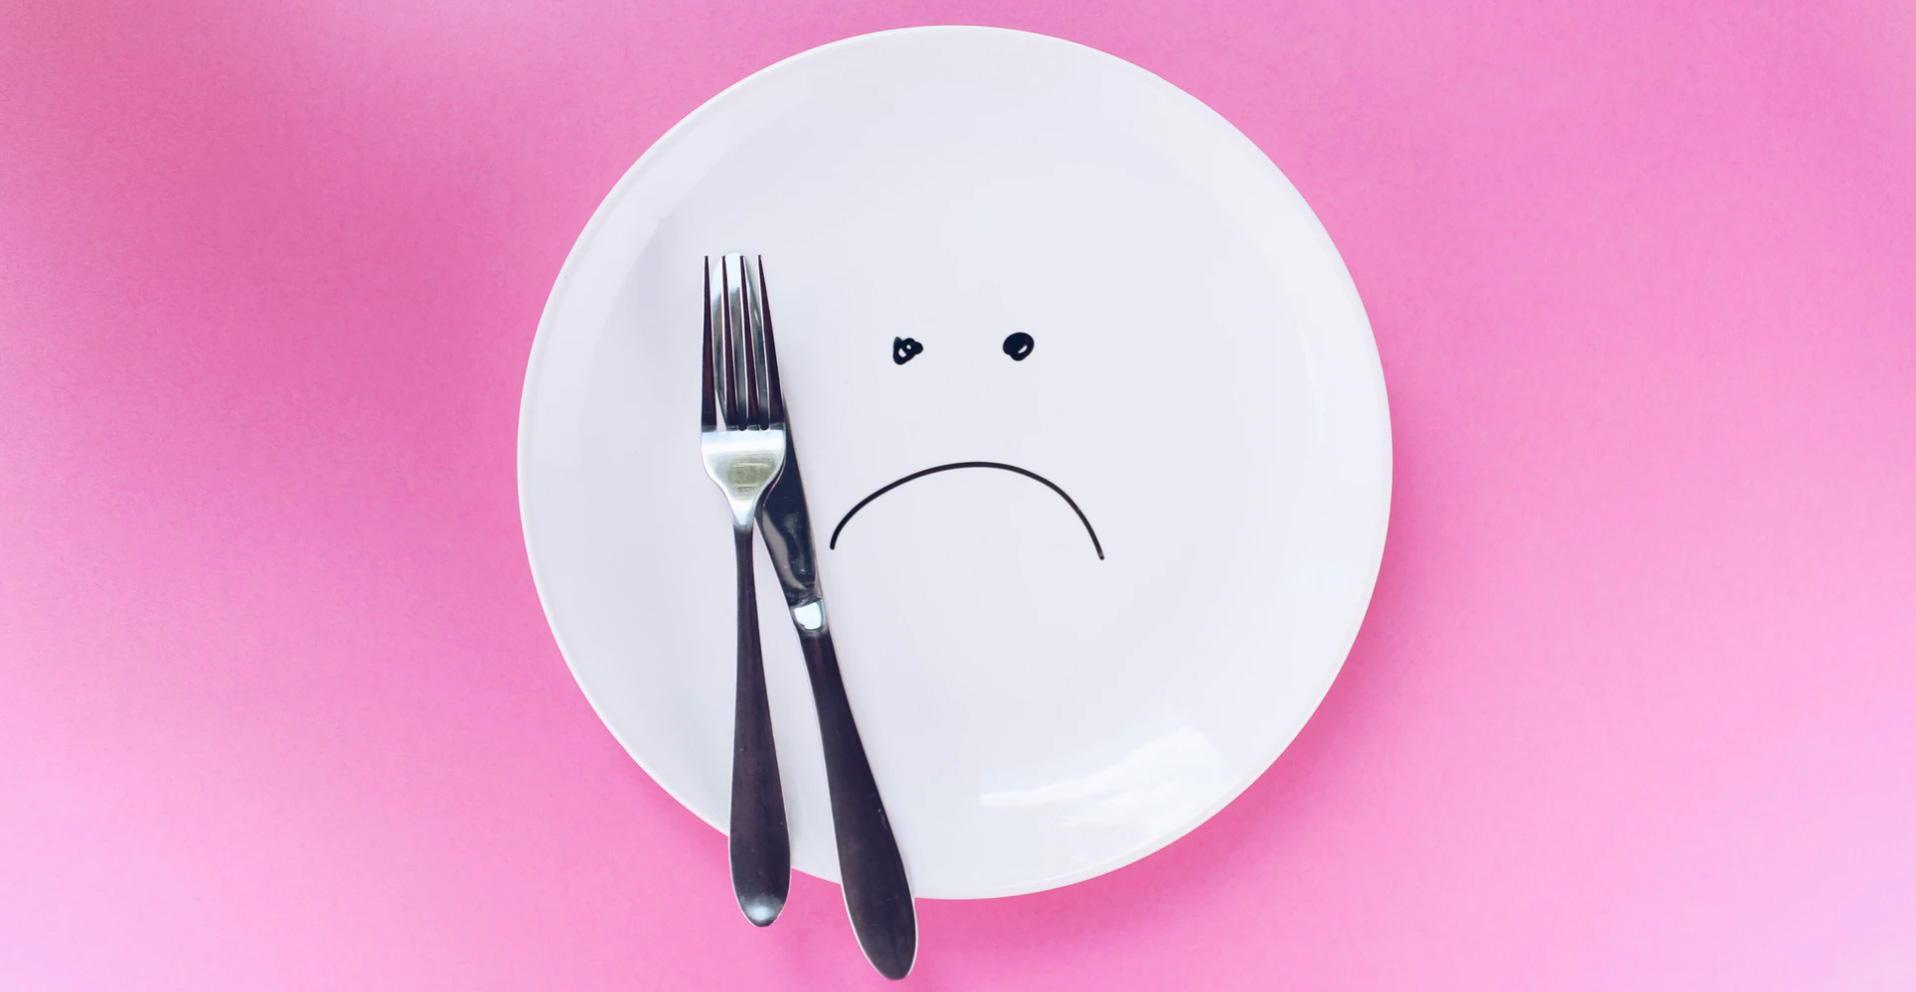 A plate with a fork and knife.